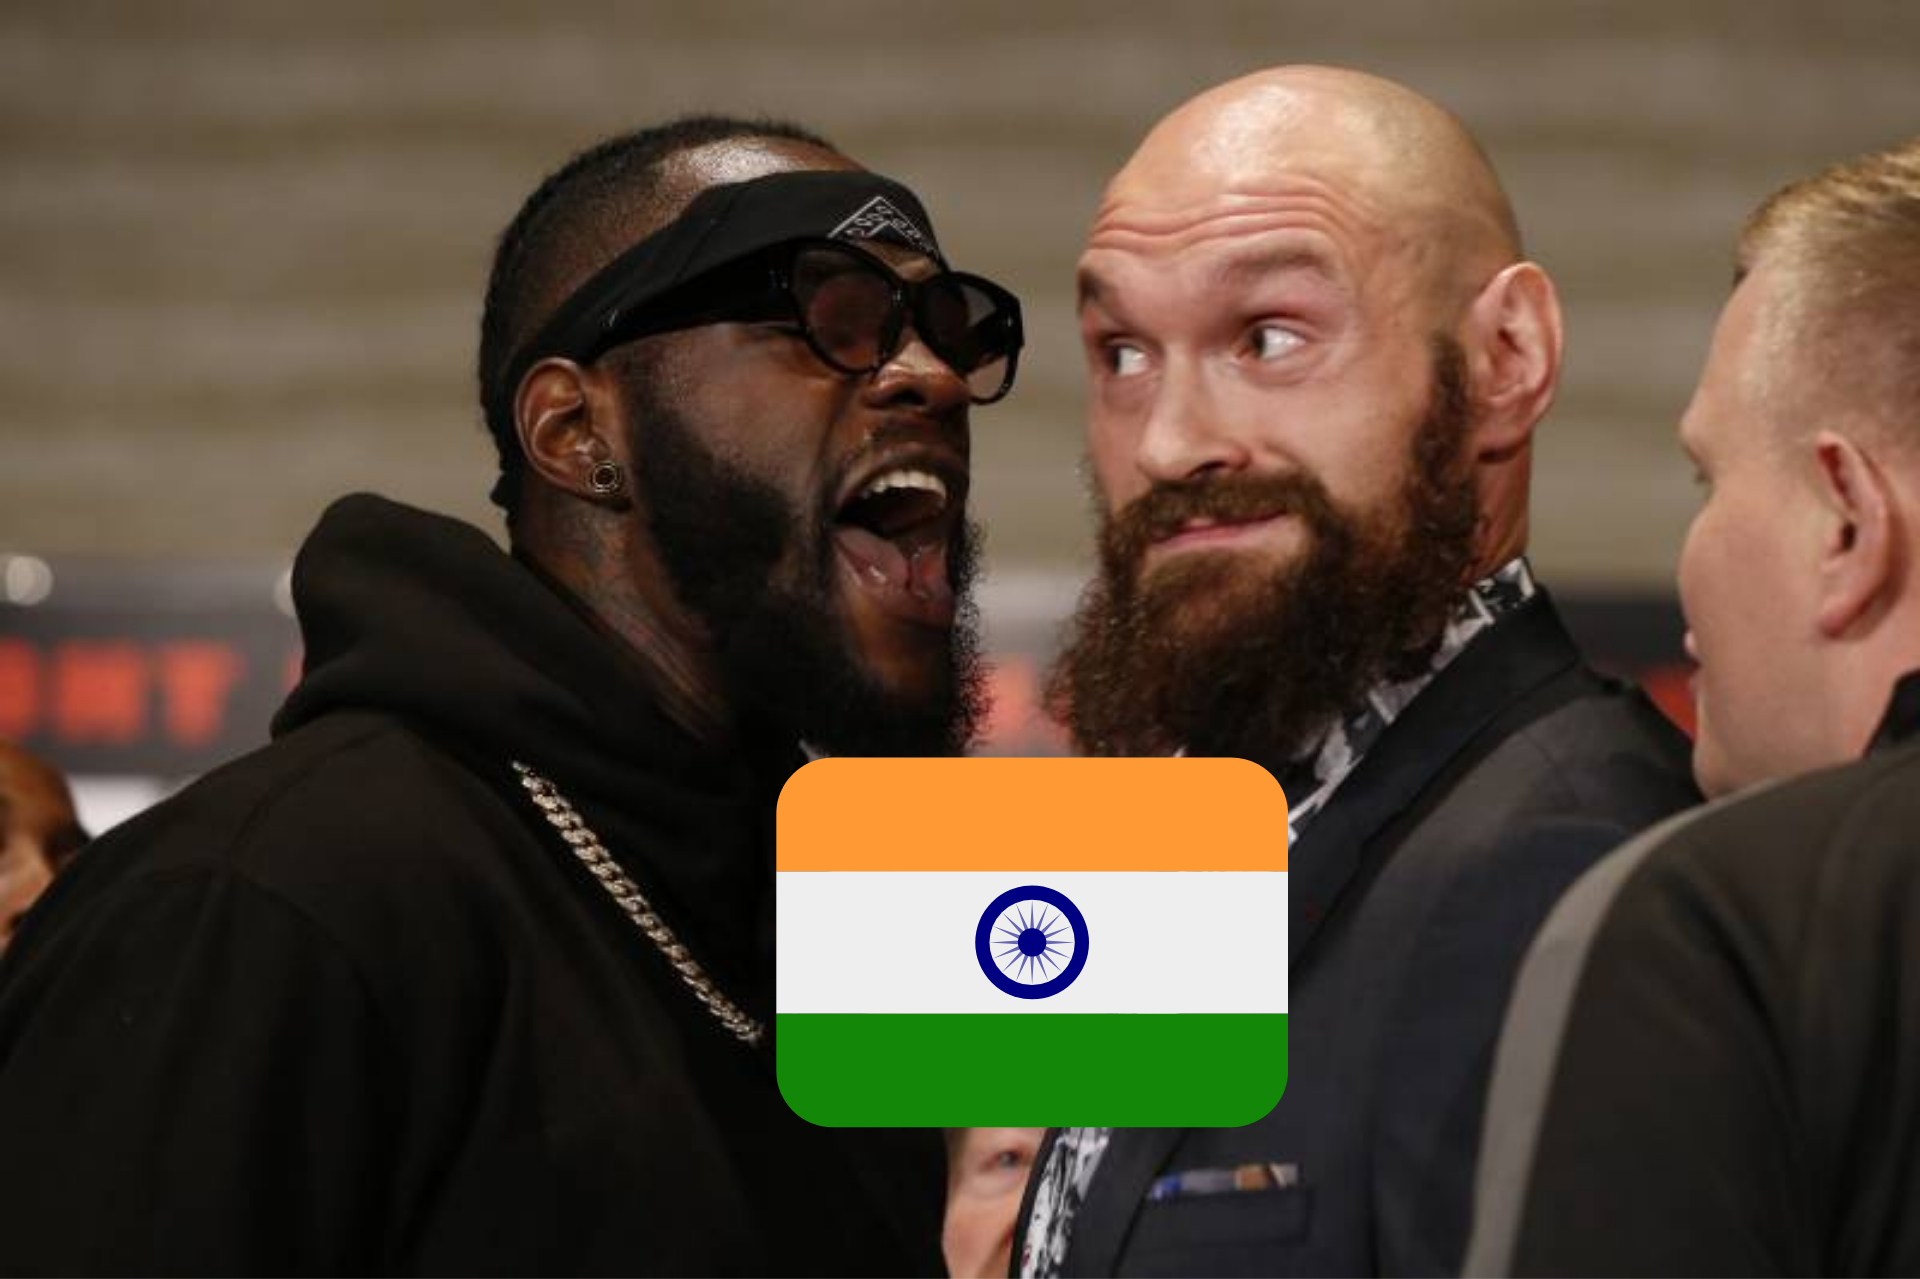 How to order and watch Deontay Wilder vs. Tyson Fury 2 PPV in India - Tyson Fury